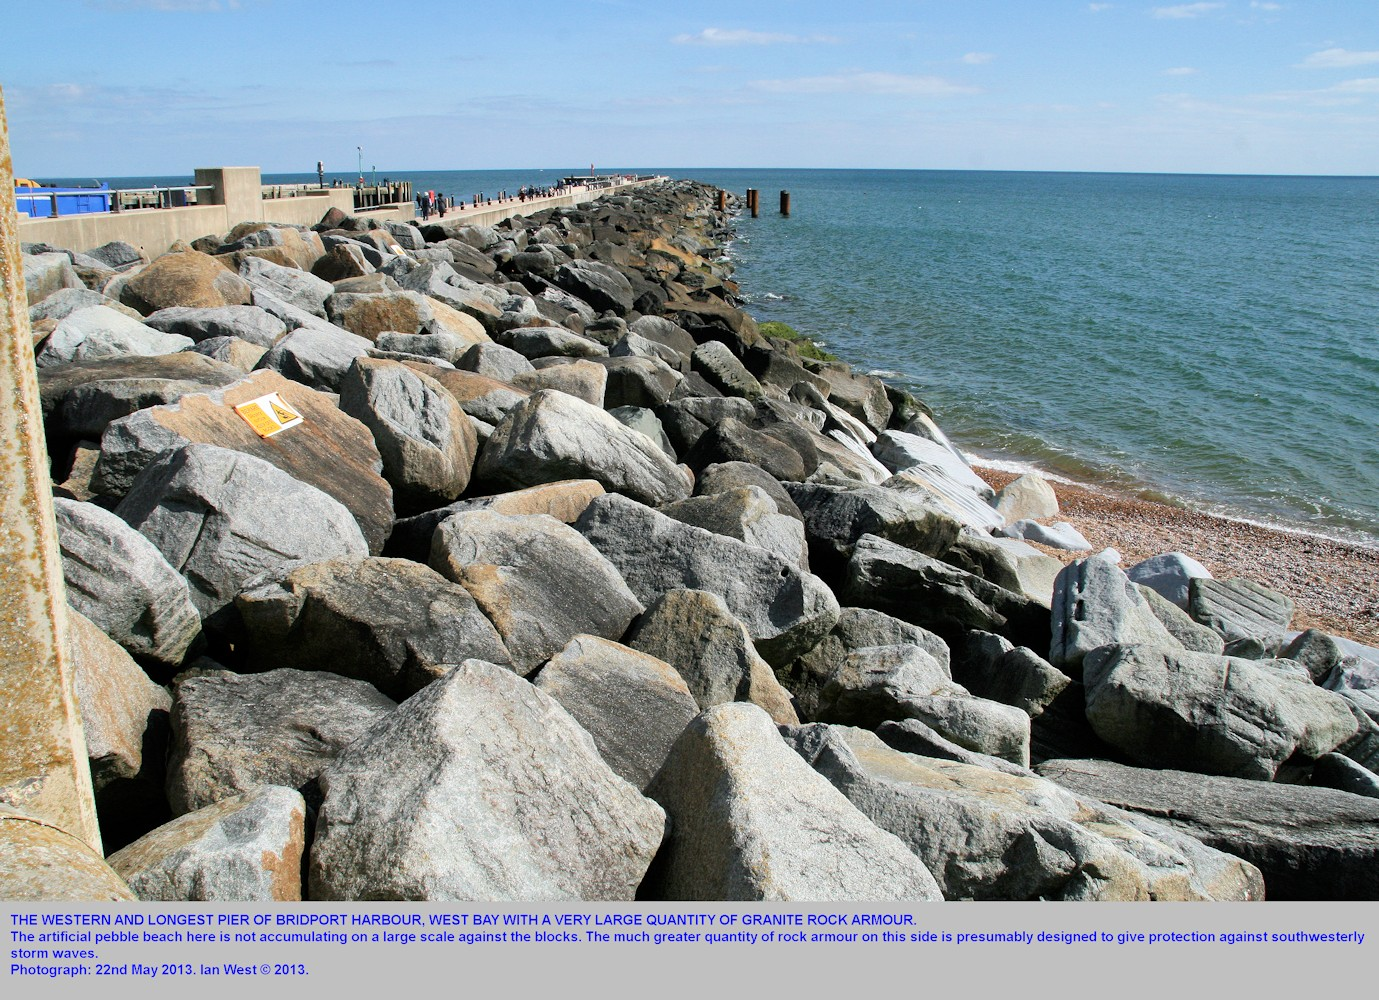 A large quantity of granitic rock armour at the western and larger pier of Bridport Harbour, West Bay, Bridport, Dorset, 22nd May 2013